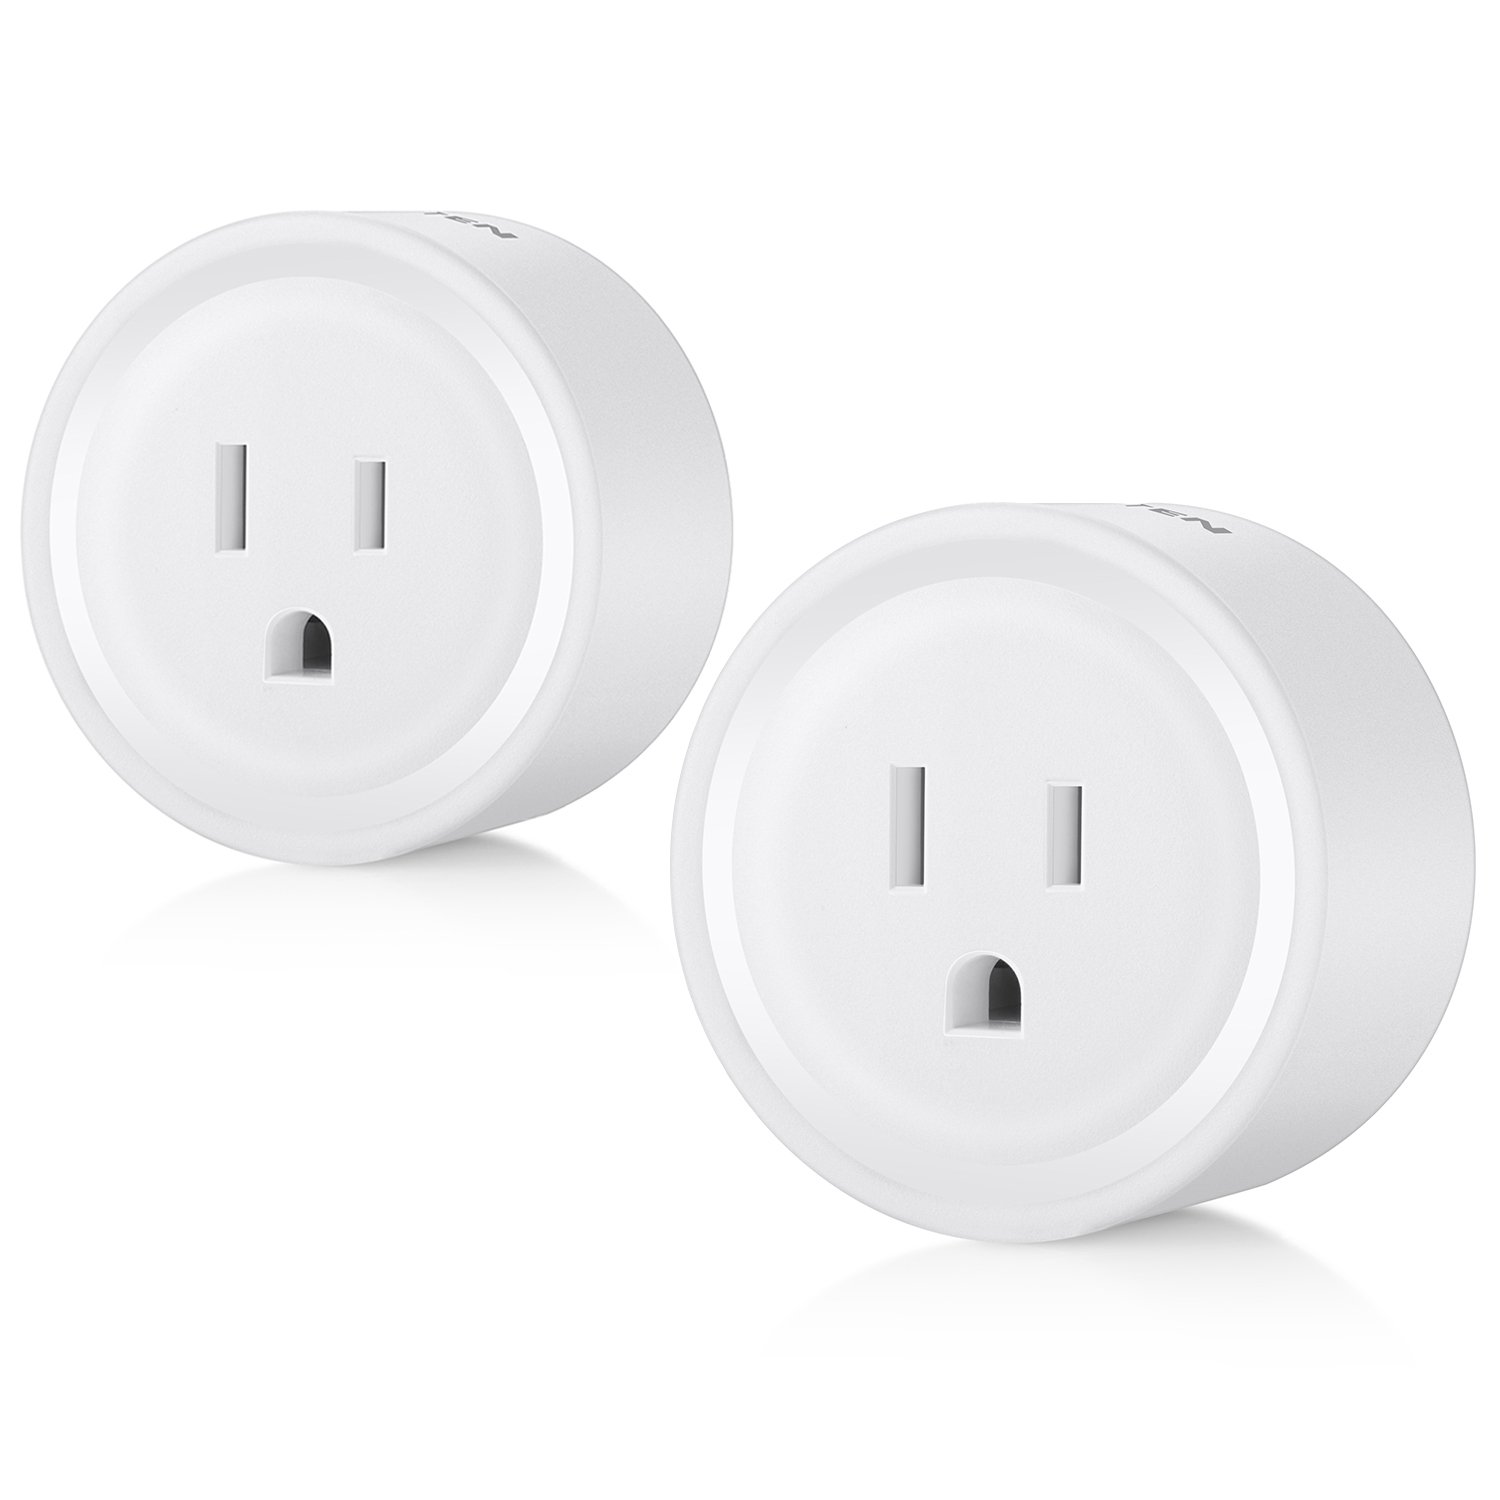 [2 Pack] BESTTEN Mini Wi-Fi Smart Outlet, Works with Amazon Alexa Echo and Google Home, Easy & Quick Set Up, White, No Hub Required, 10 Amp/1250 Watts, FCC Certified